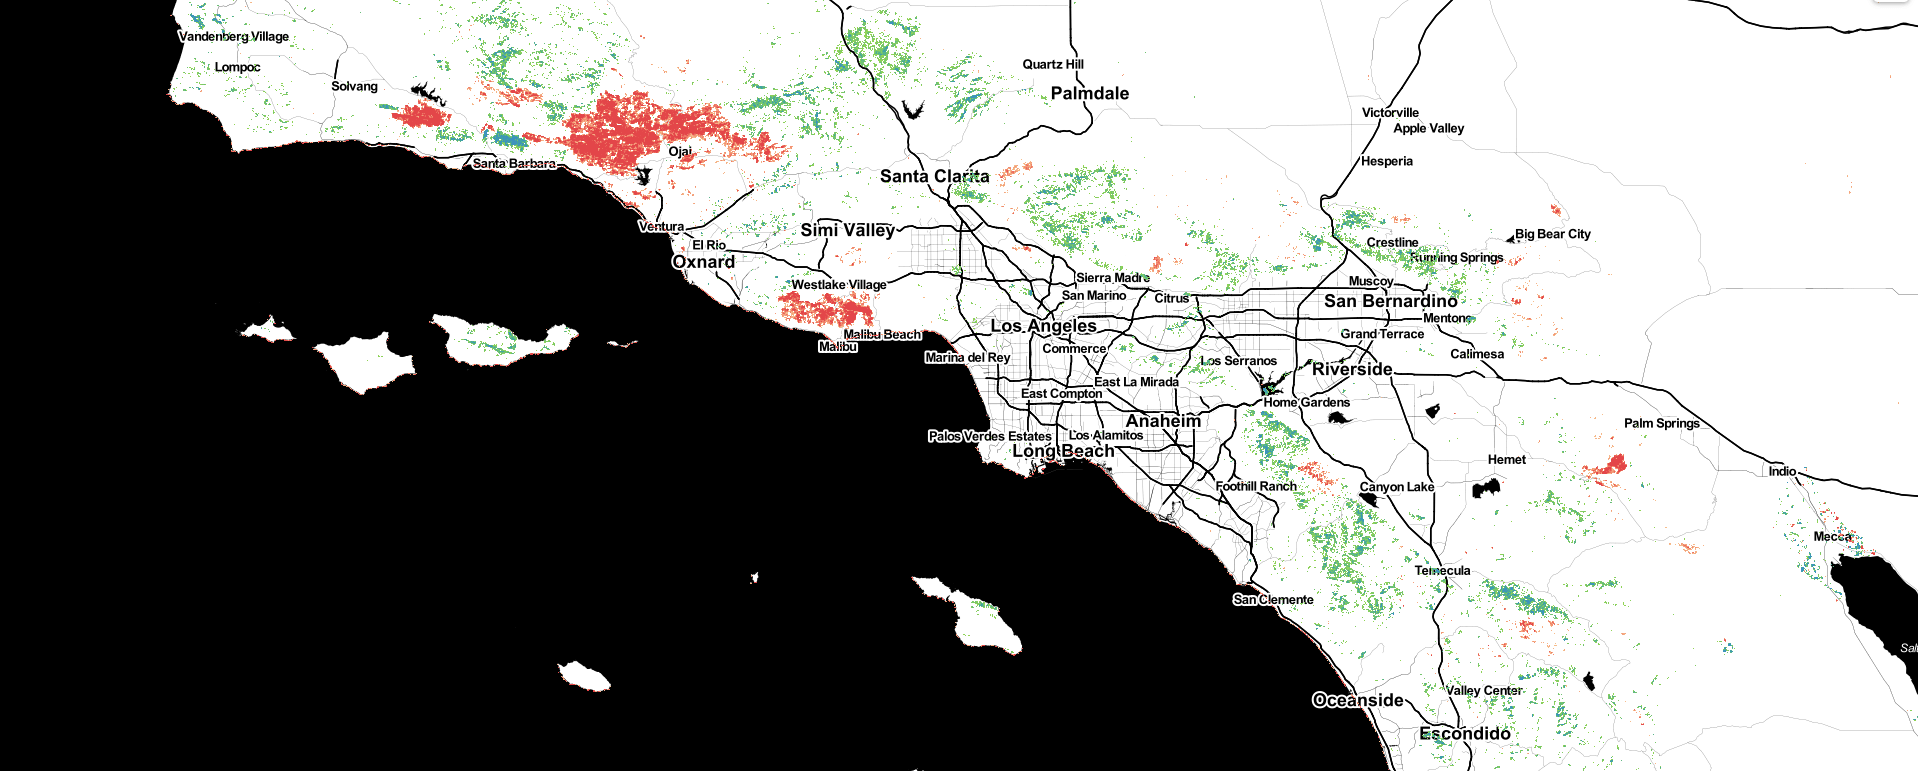 Canopy Cover Change from 2016-2020 in Southern California